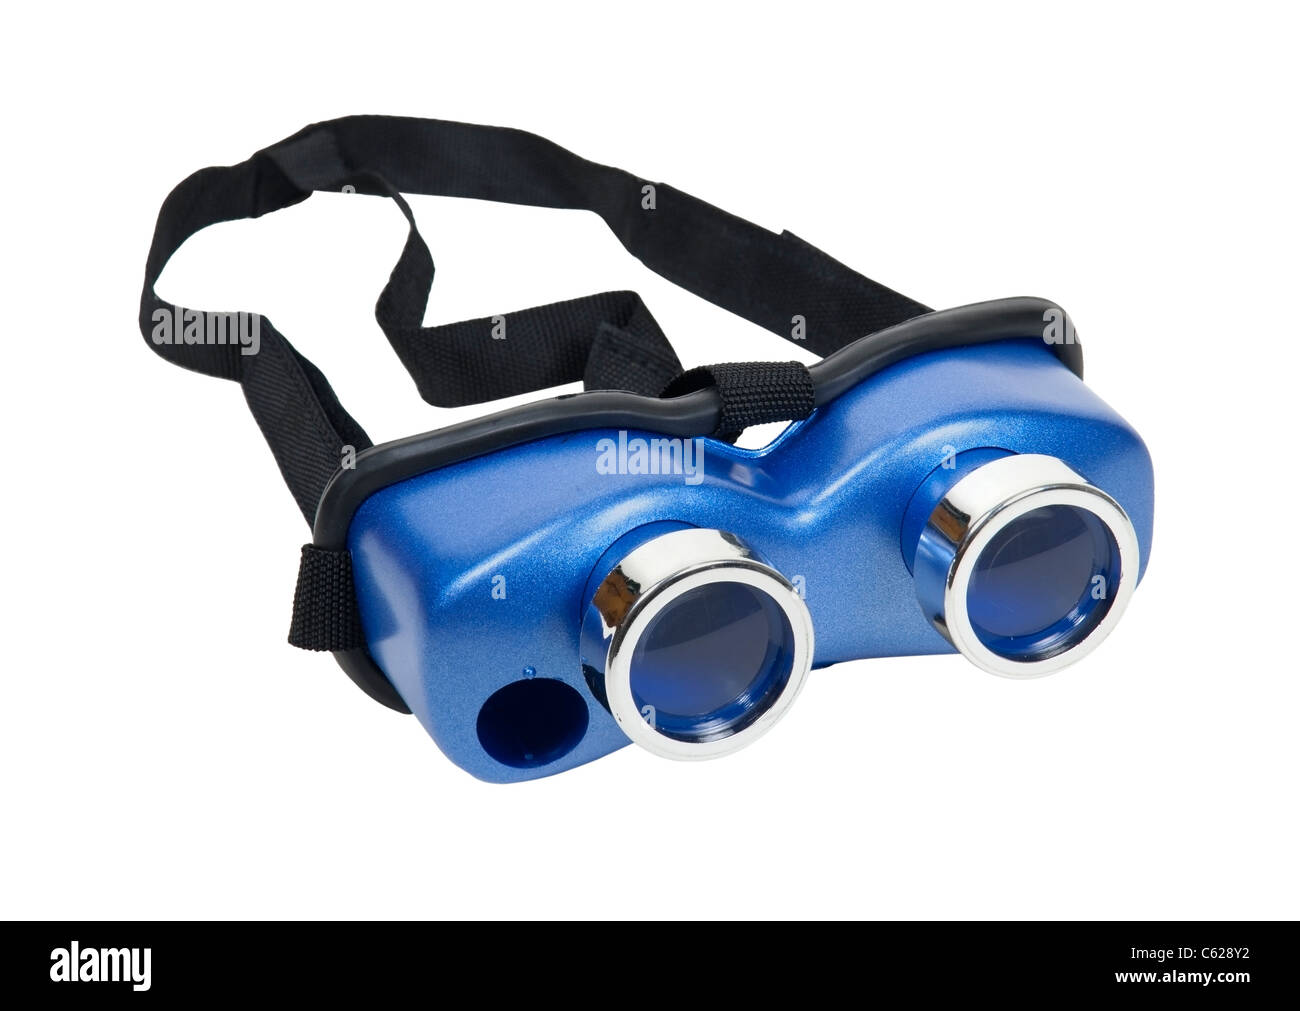 Blue headgear goggles that fit over the head for a magnified view - path included - Stock Image